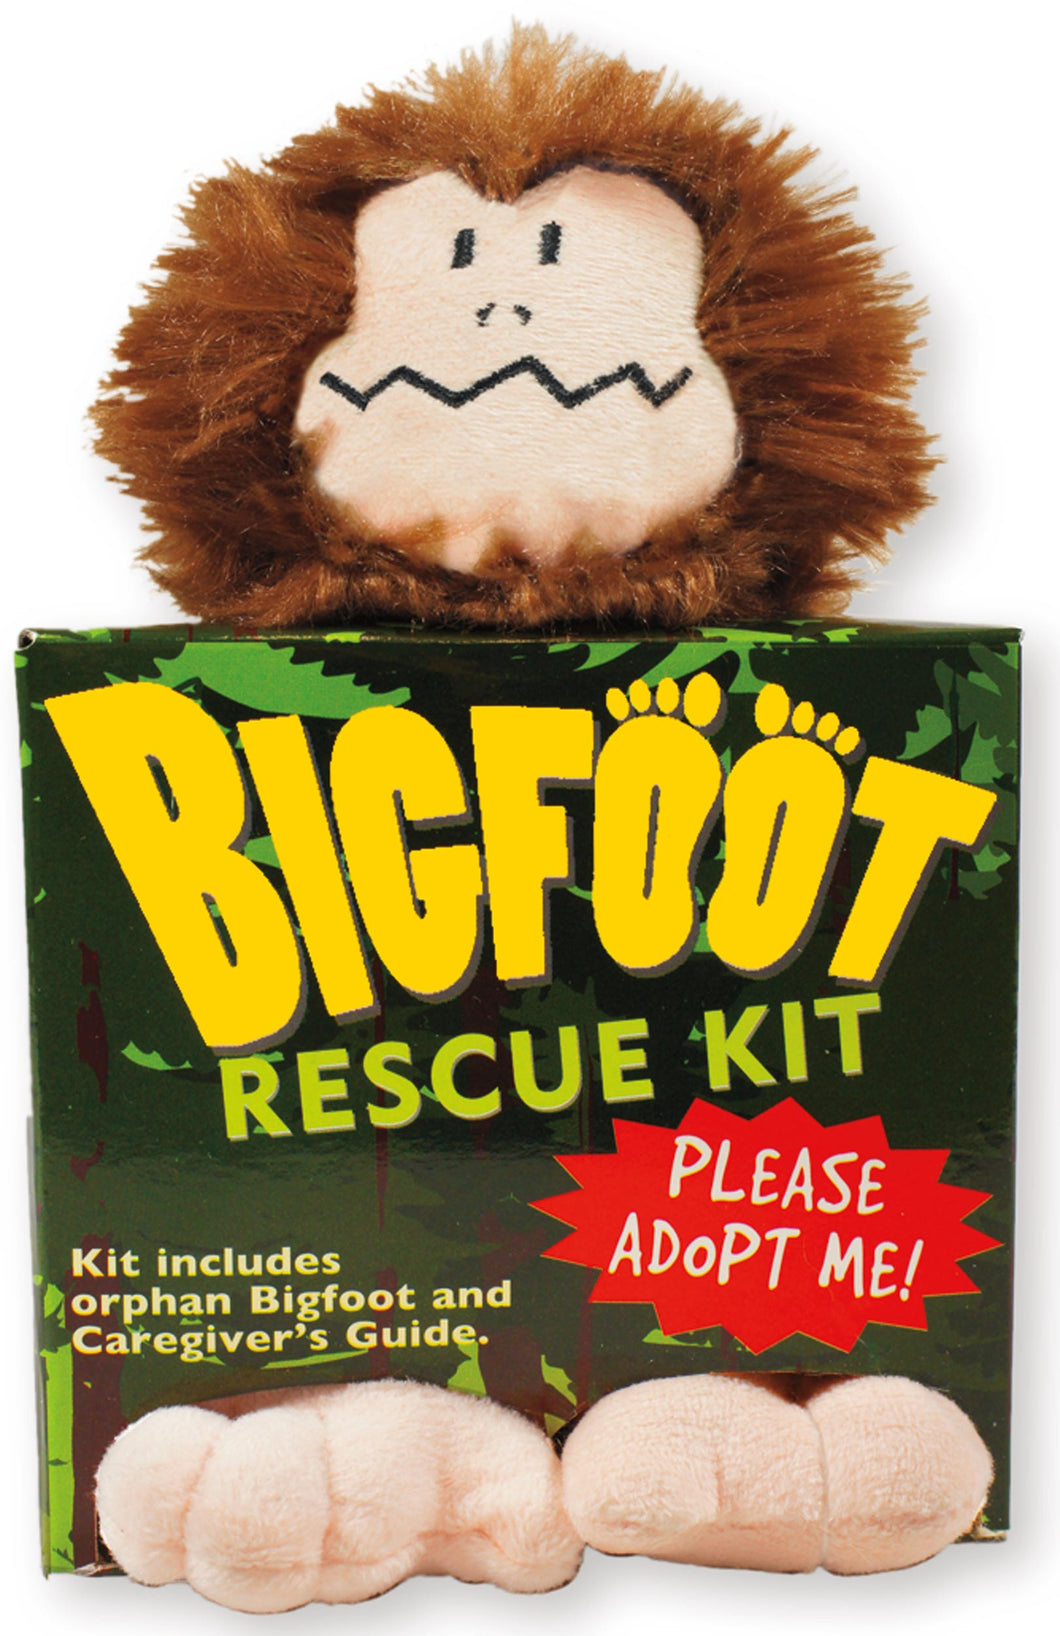 Peter Pauper Press Bigfoot Rescue Kit Kit